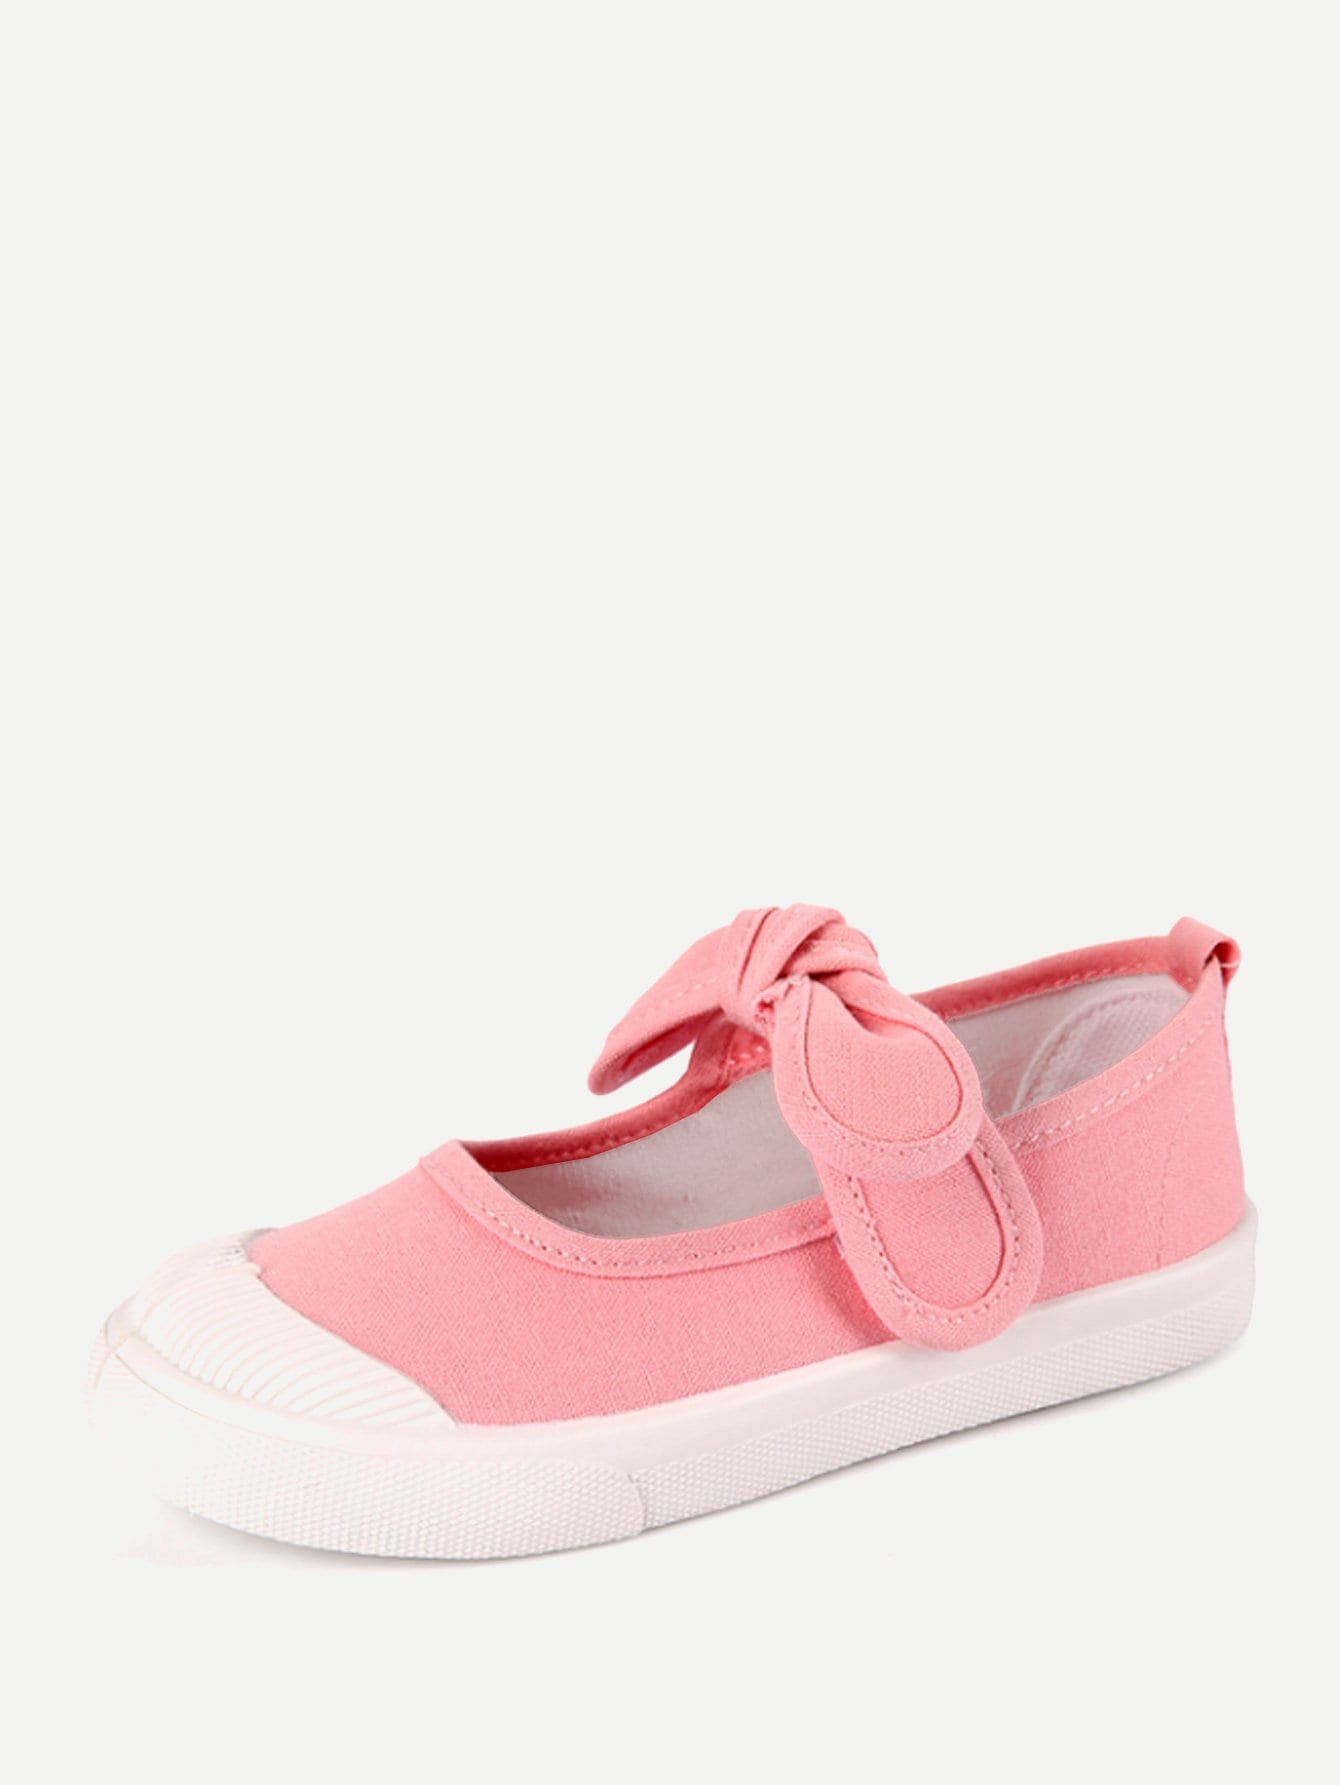 Baby Knot Design Flats